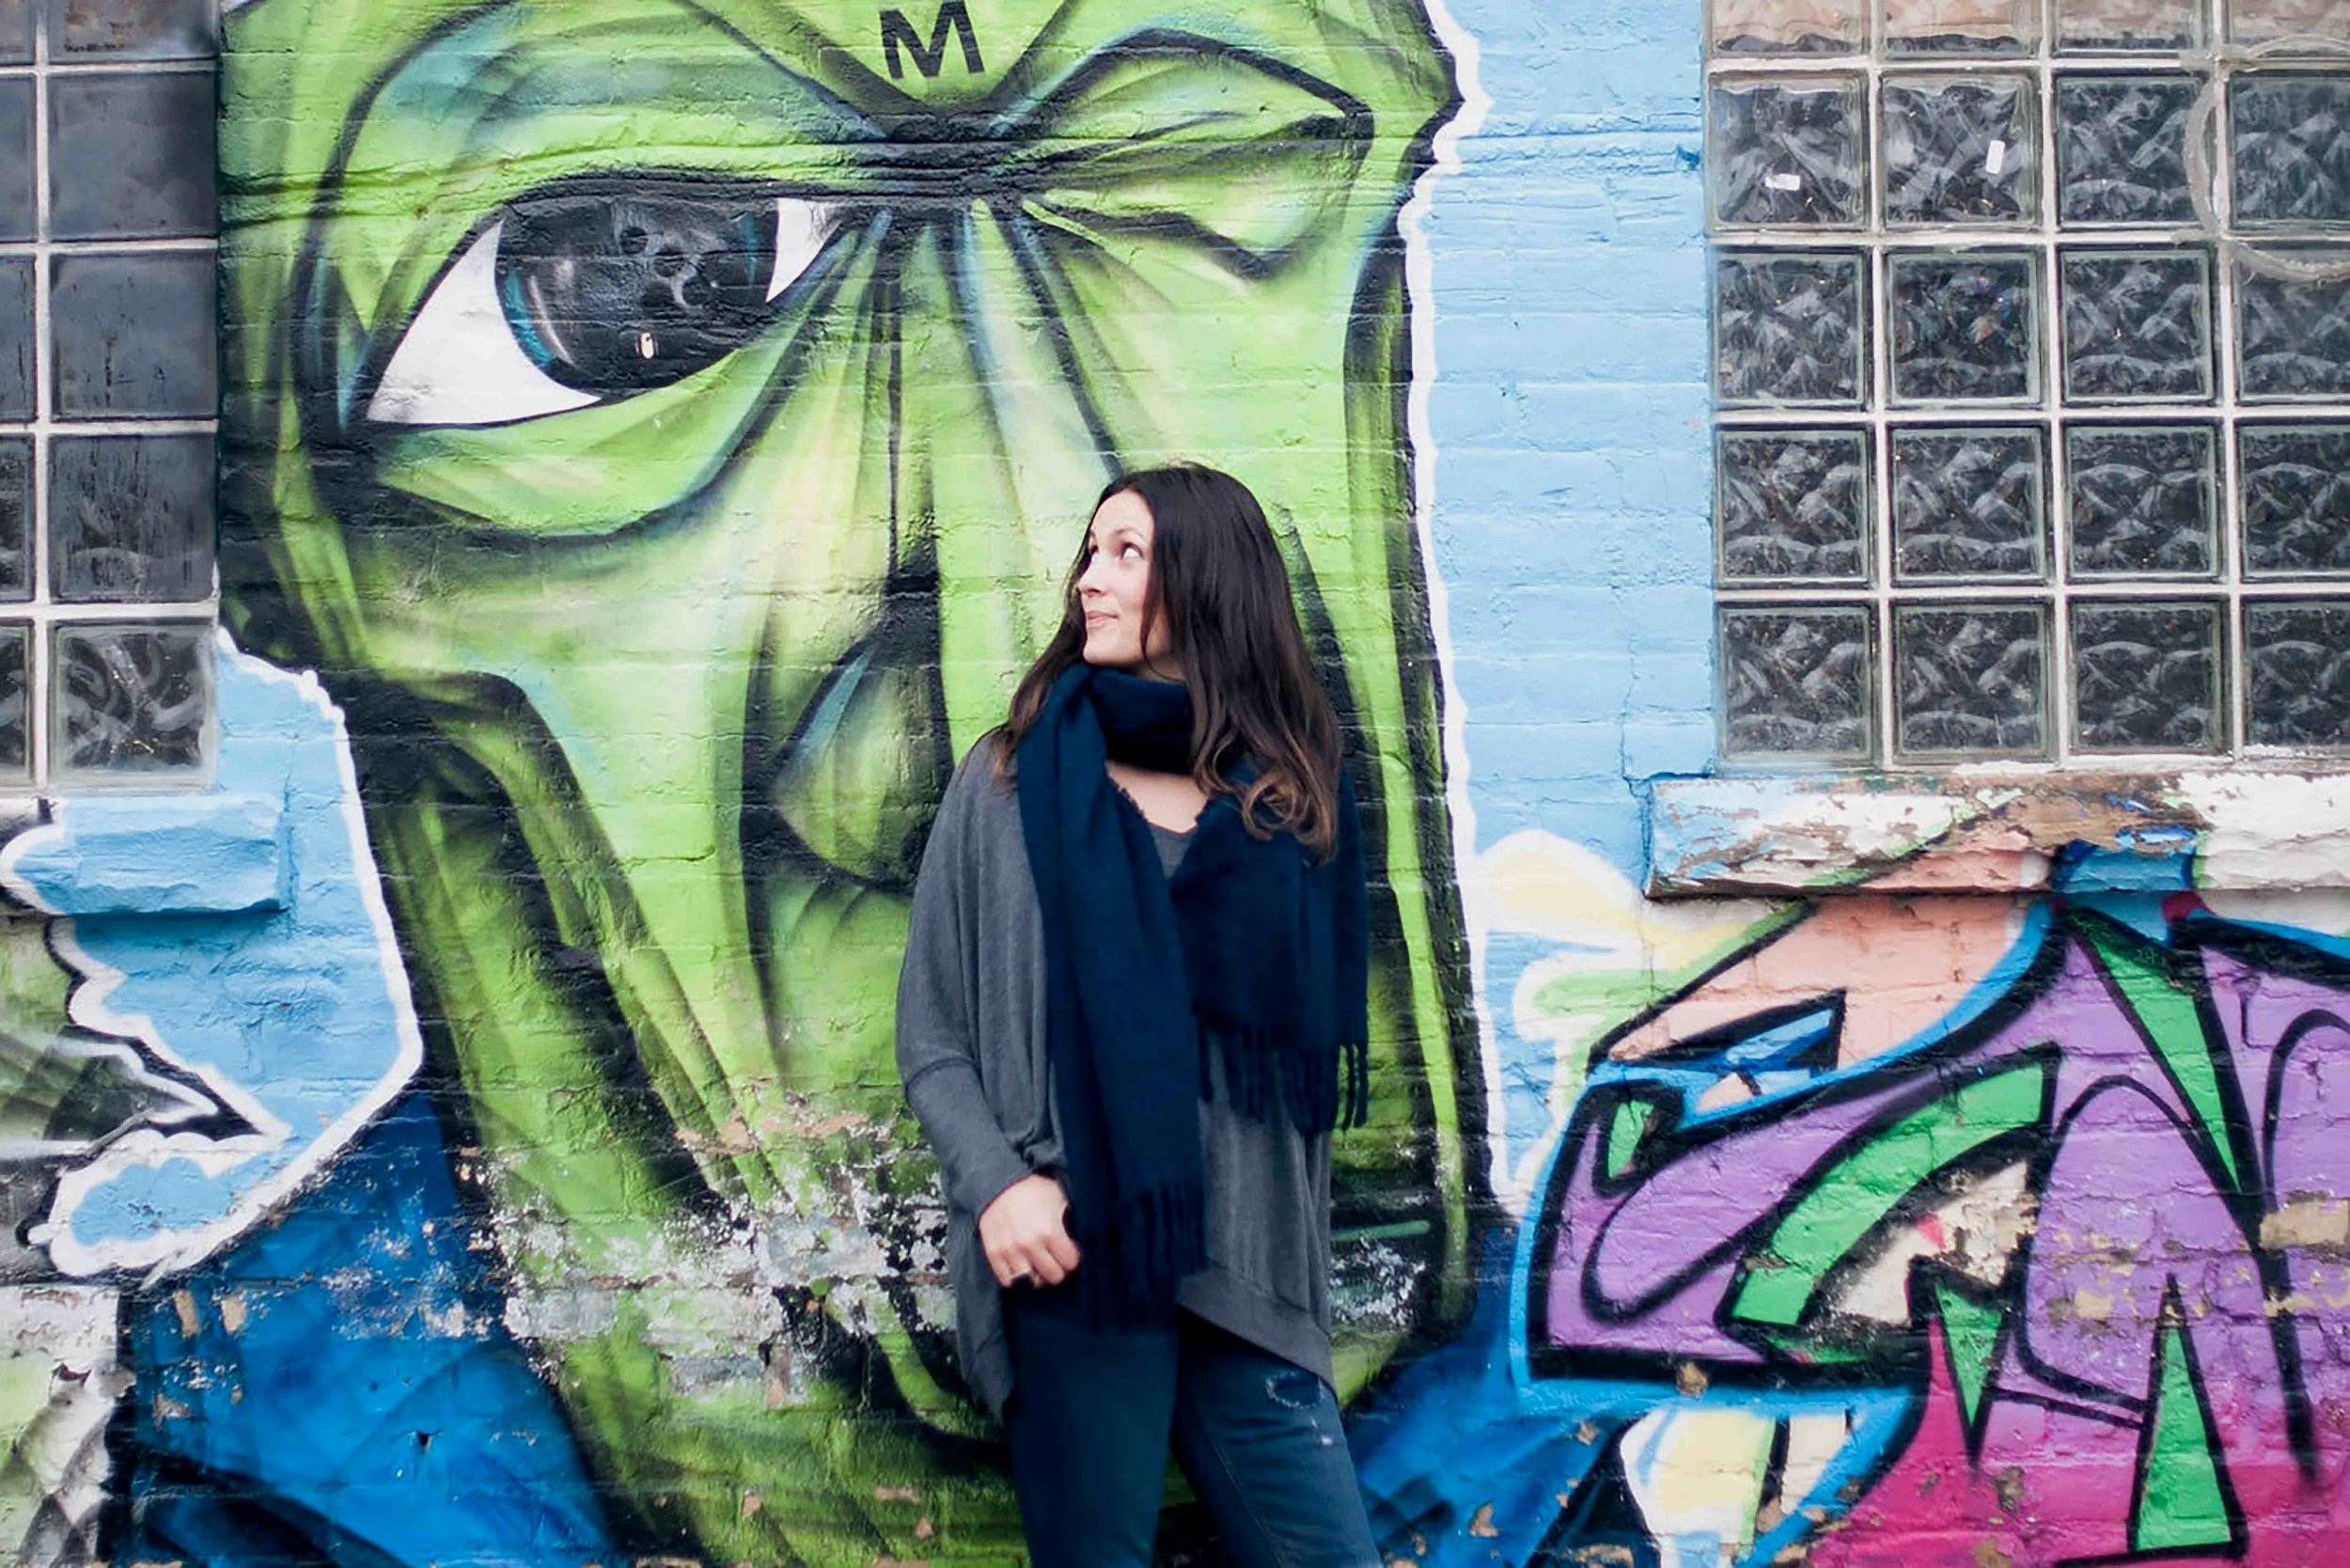 A woman stands against a graffitied brick wall. Behind her is a green face with a large eye, she looks to the side at the eye.